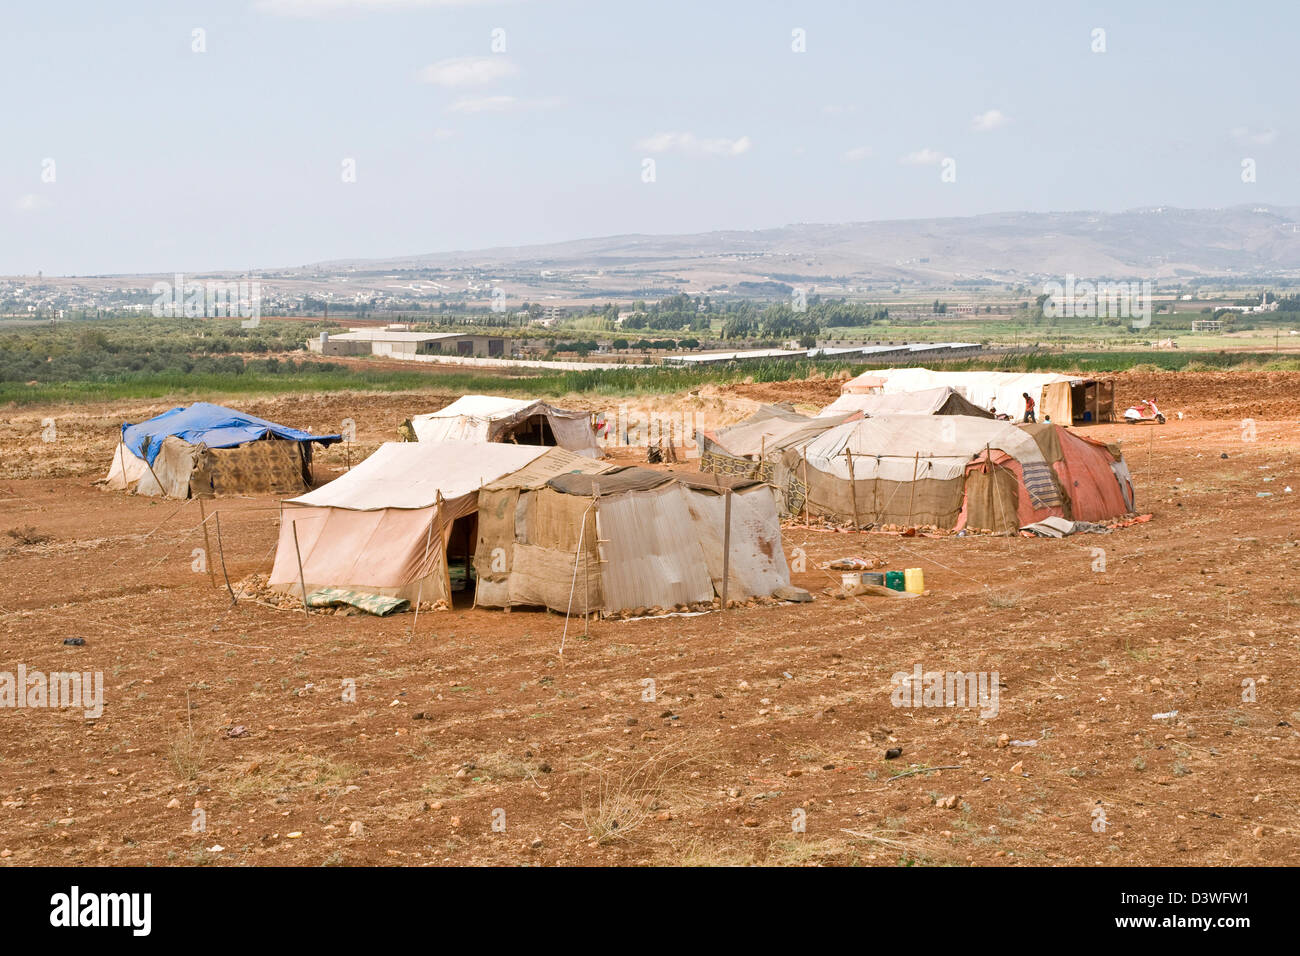 A tent refugee camp for Syrian migrants on a farm in the northern Lebanese region of Wadi Khaled, just south of Stock Photo